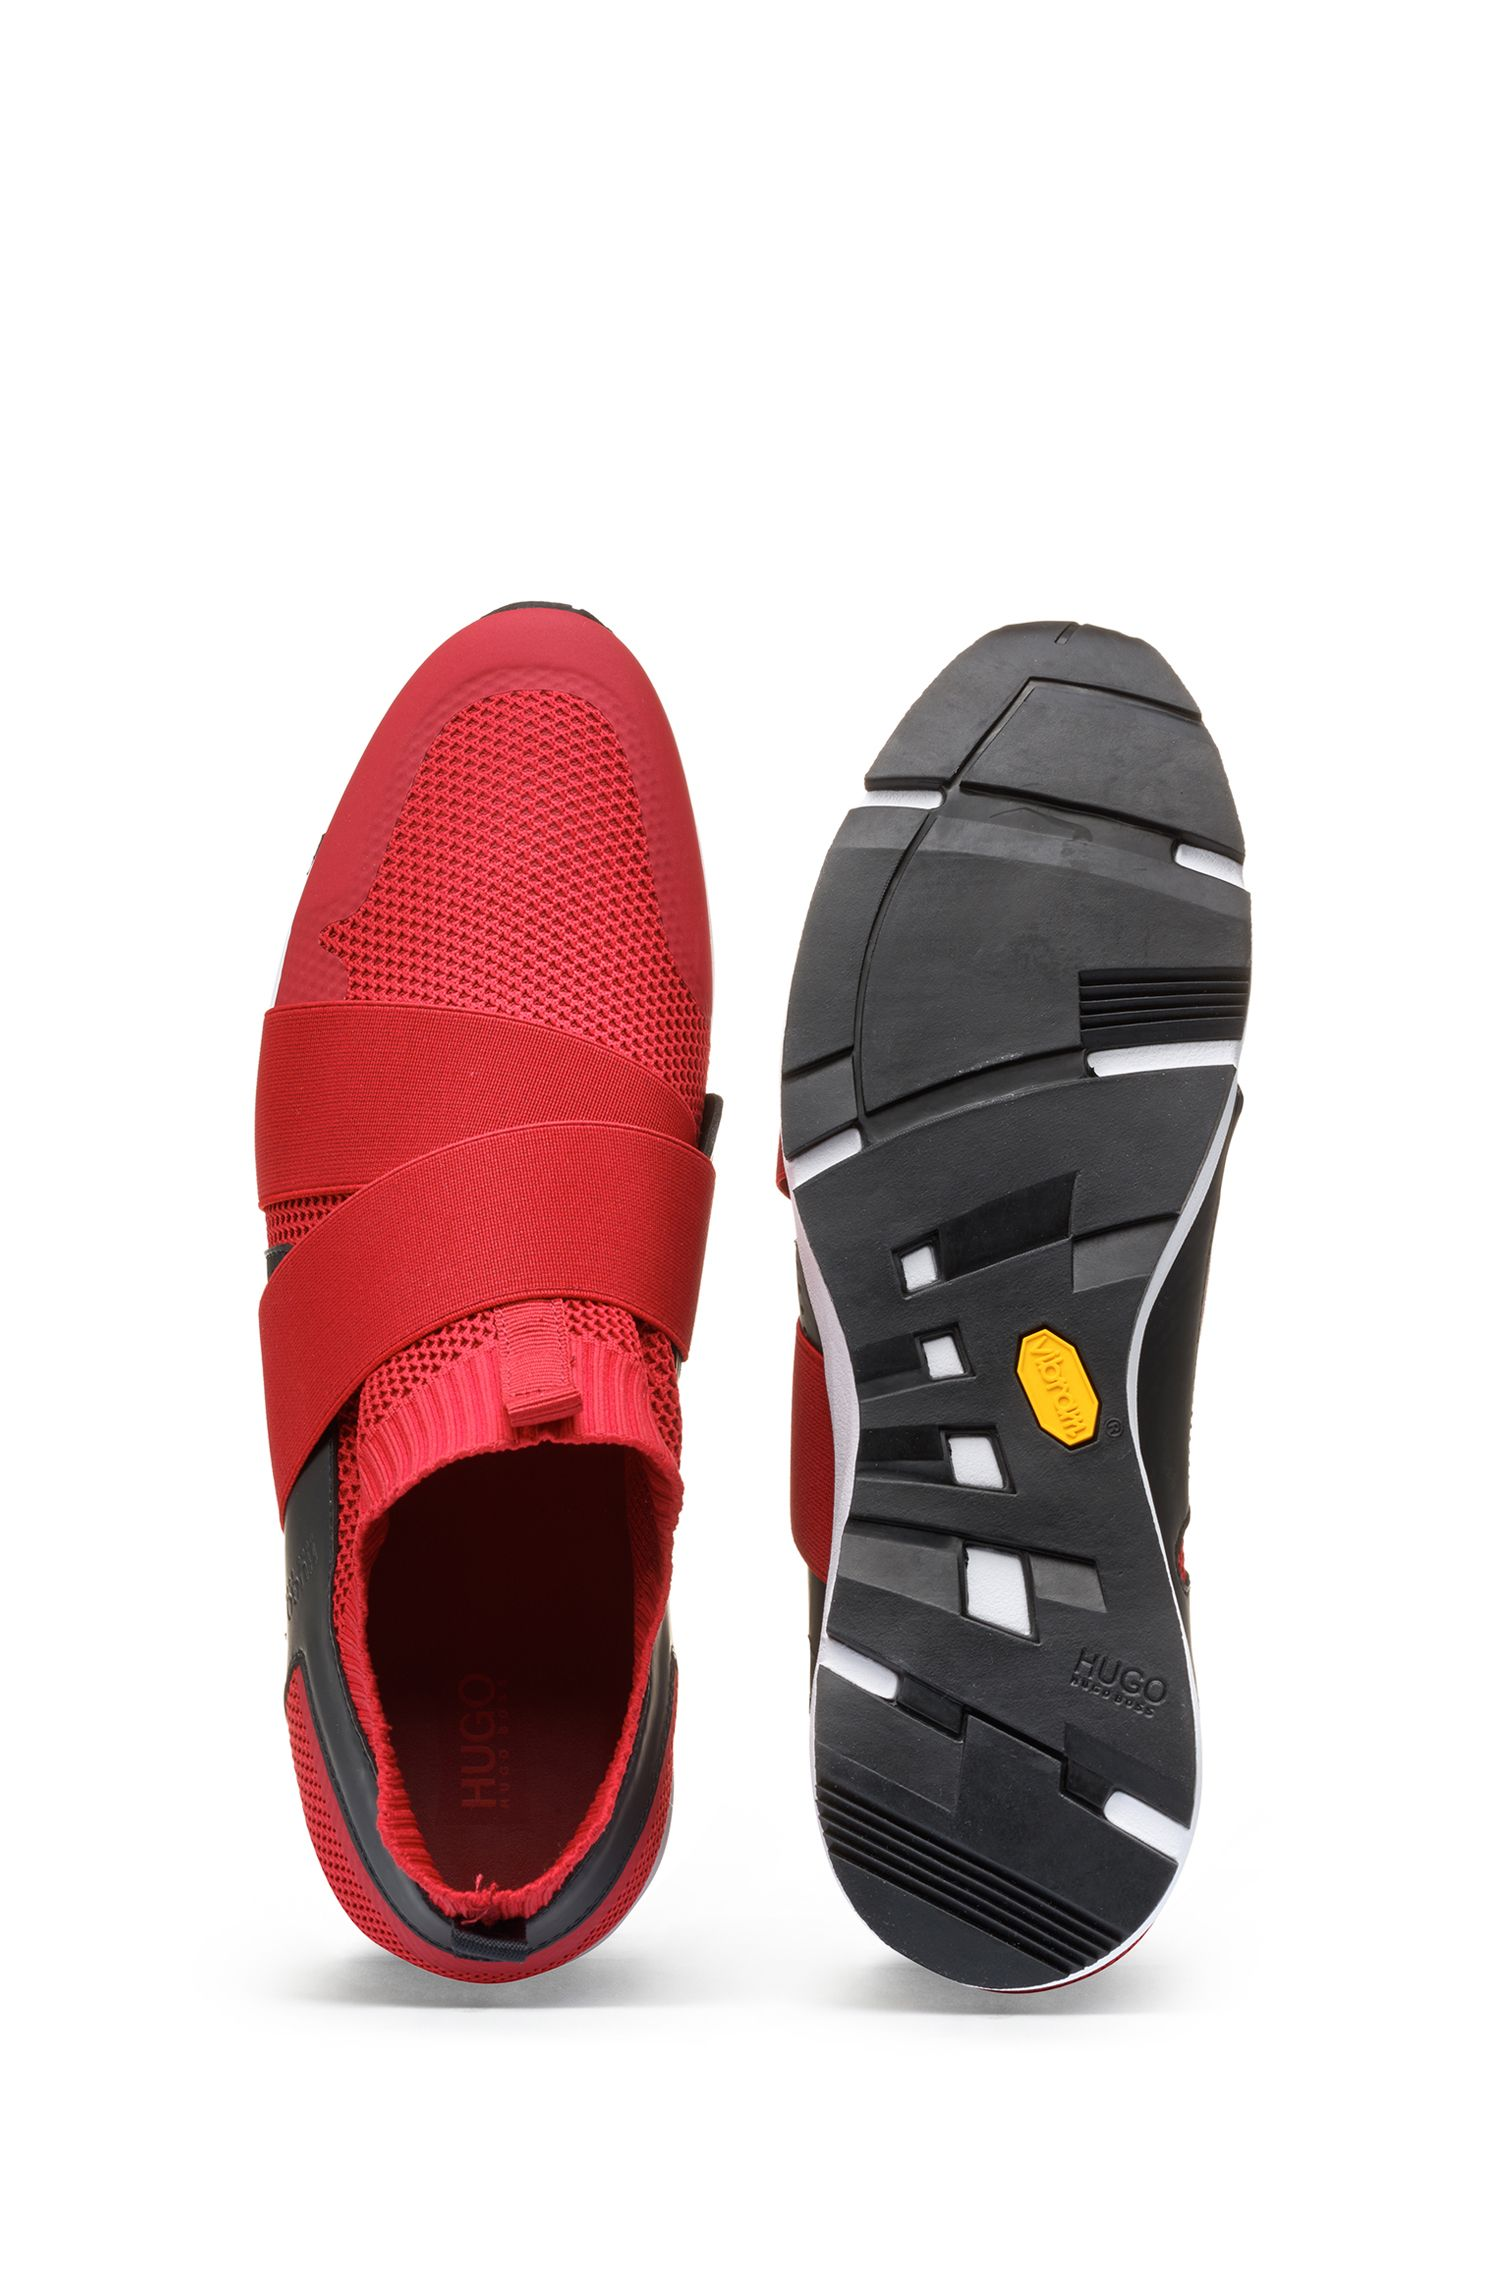 Slip-on hybrid trainers with Vibram sole, Dark Red